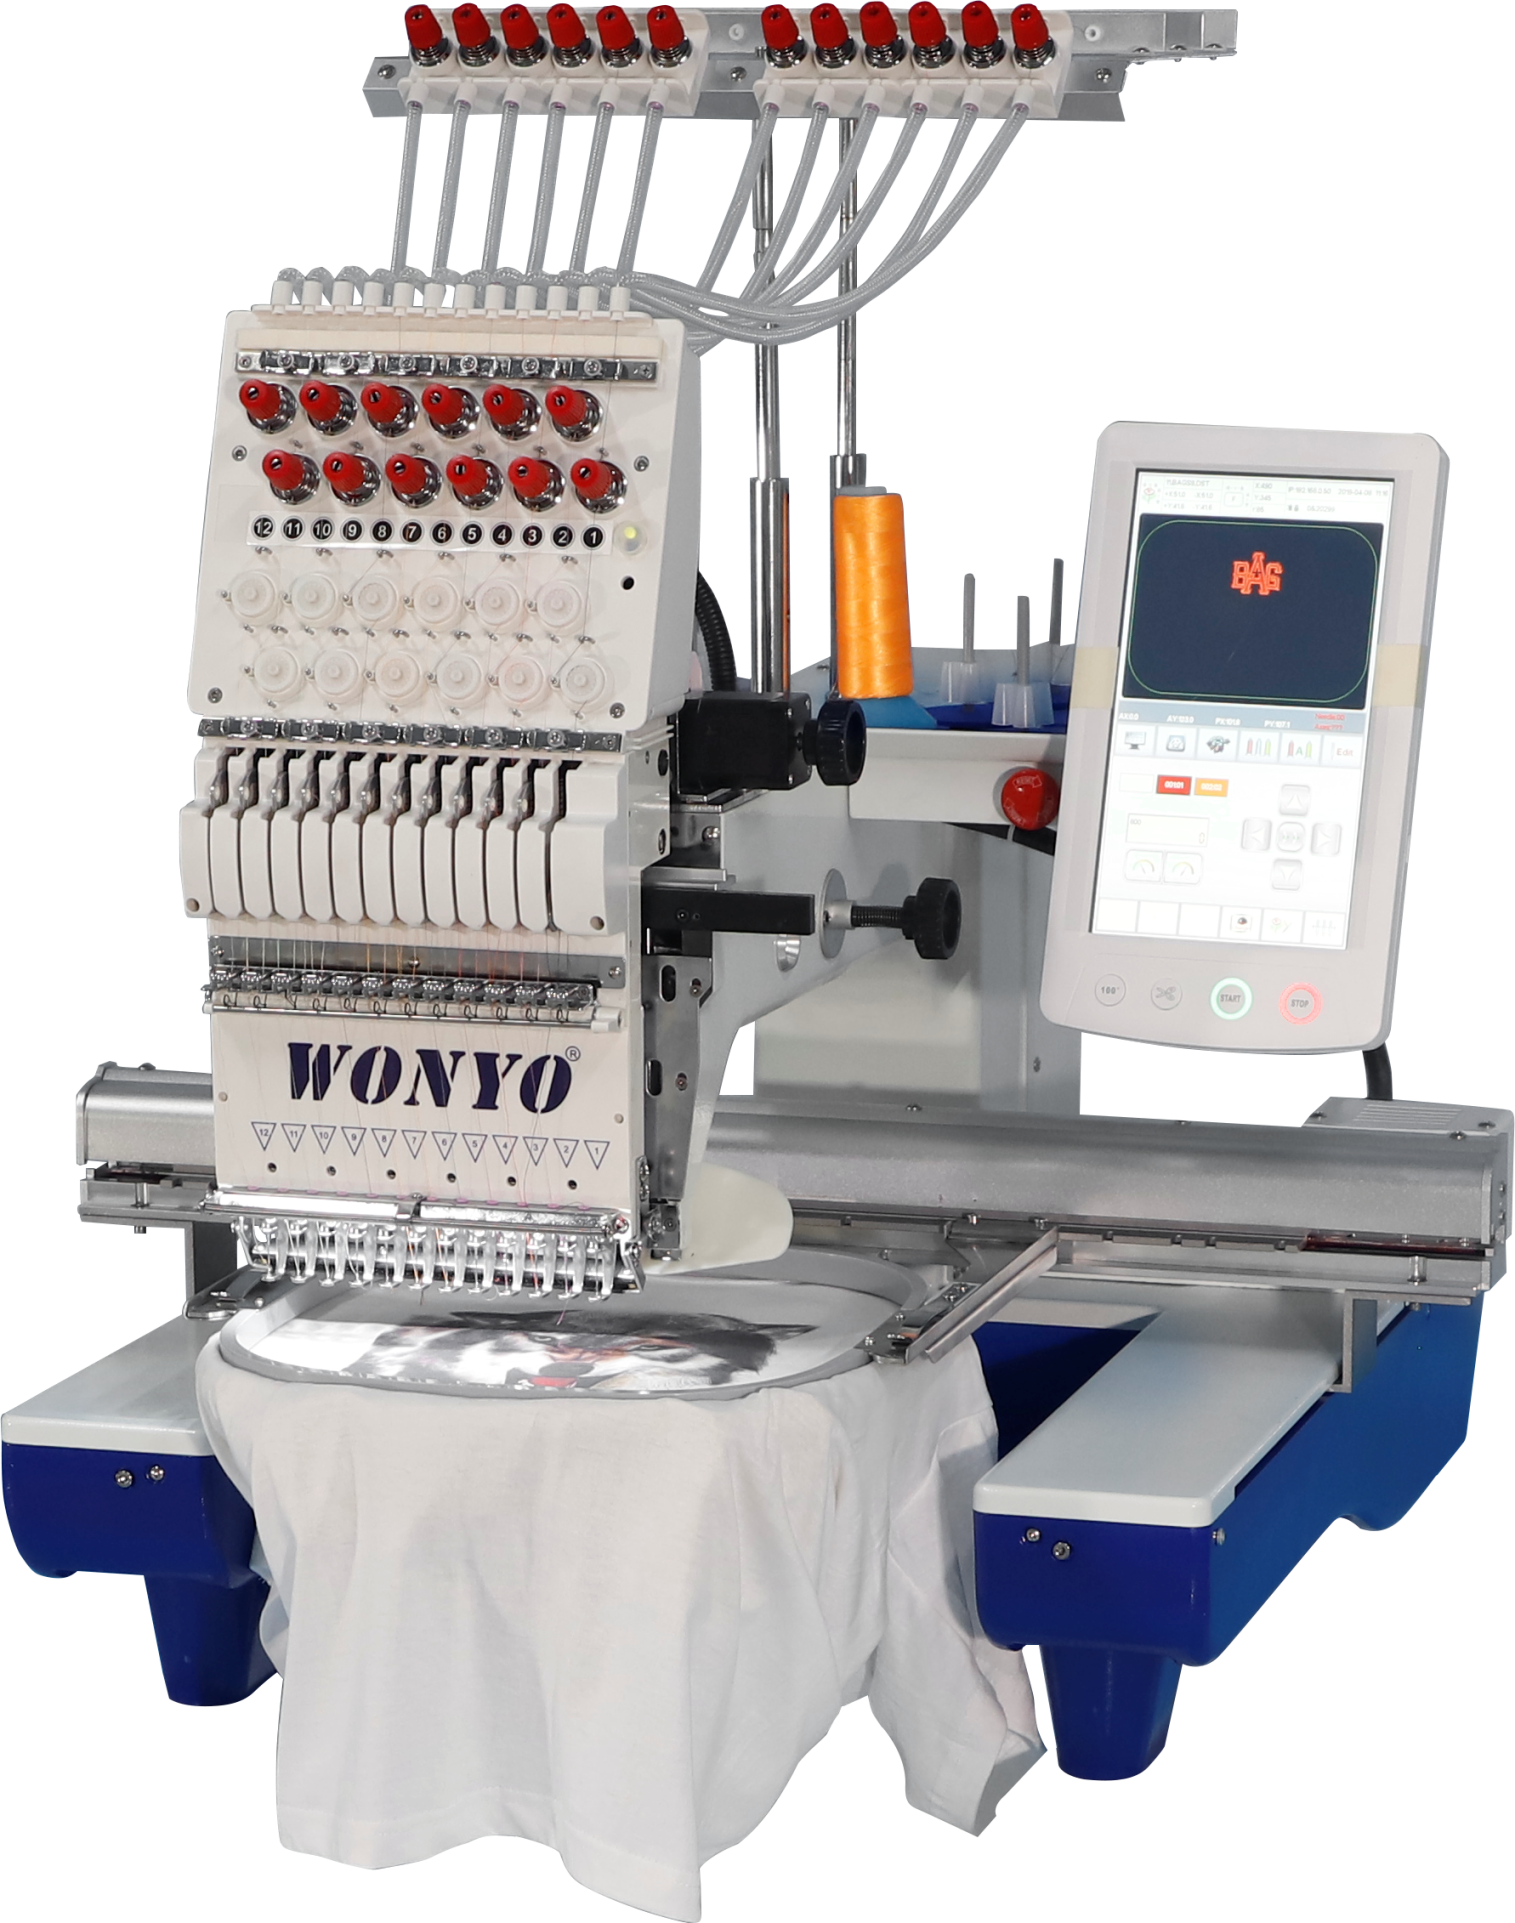 WONYO 1 head embroidery machine with software